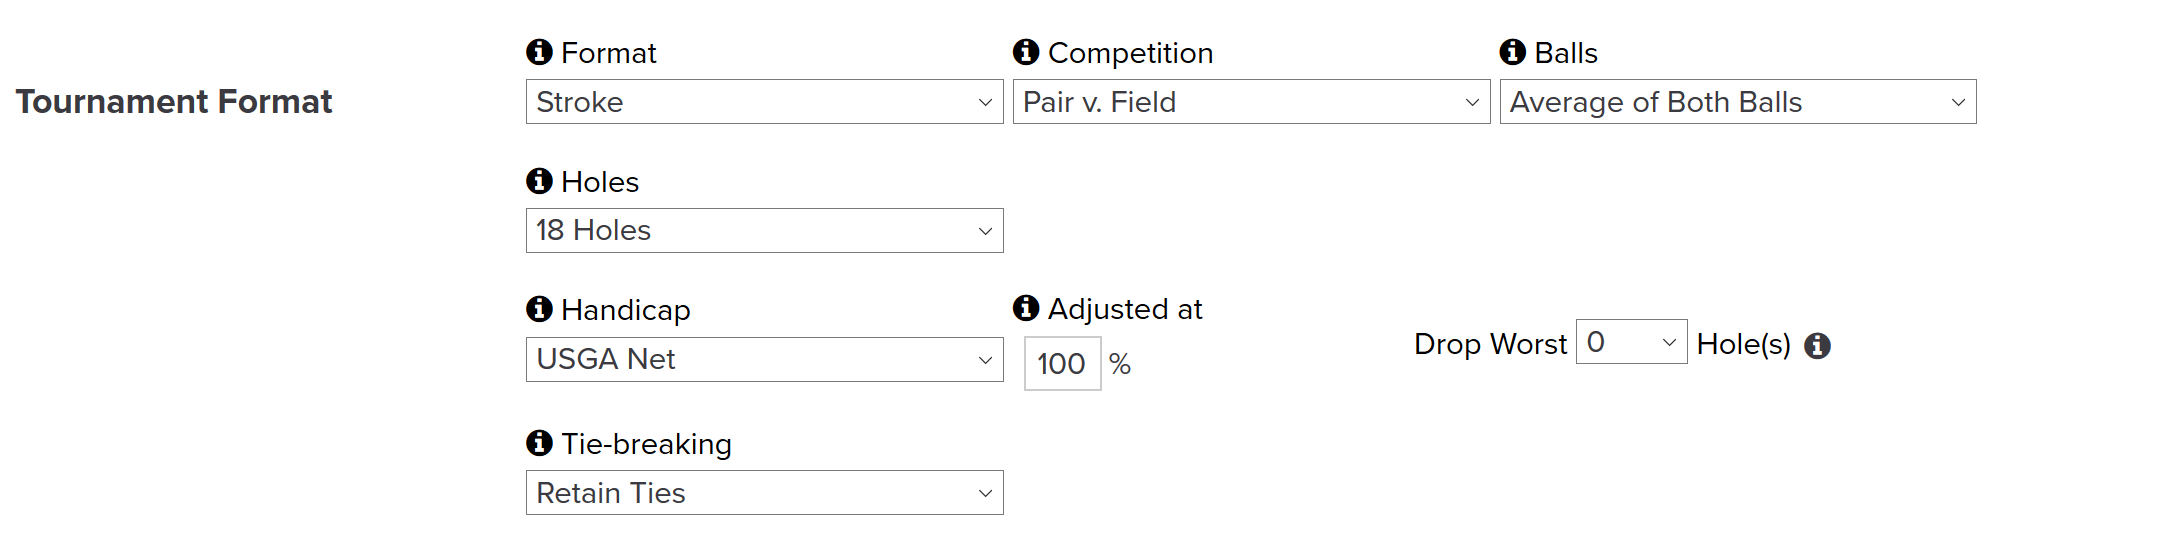 golfgenius can i setup a team tournament that counts the average